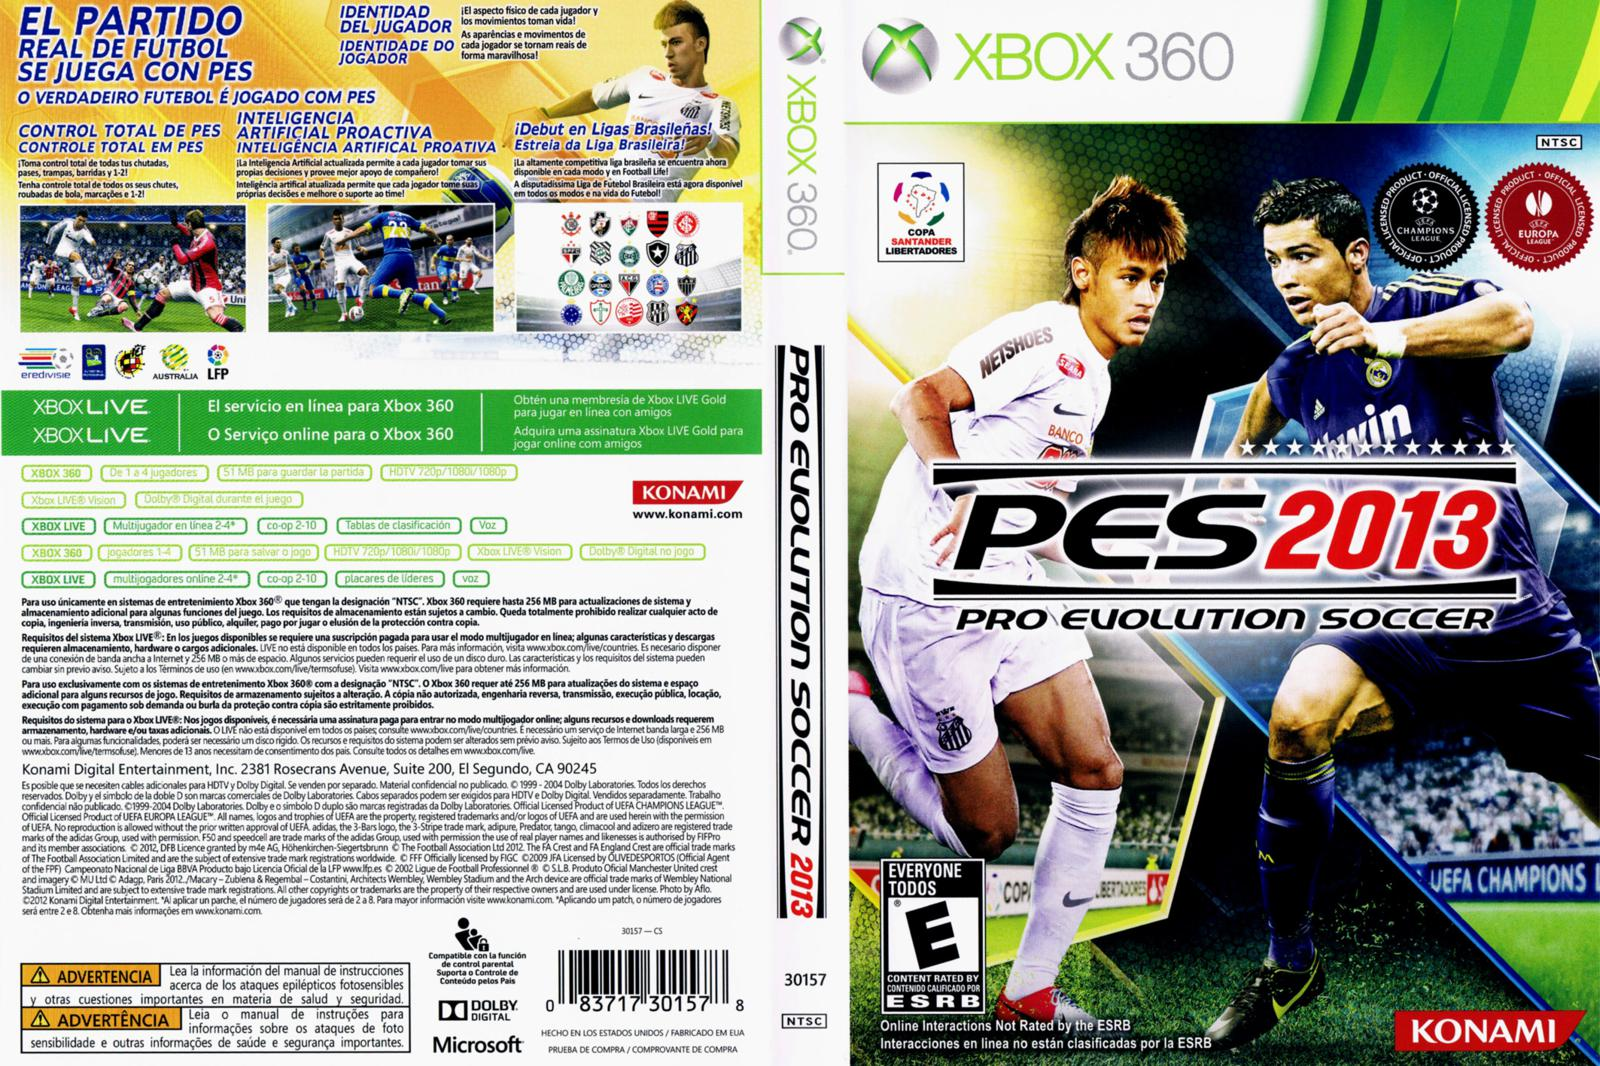 Infinity Pro Evolution Soccer 2013 Xbox 360 Pes 2013 Torrent